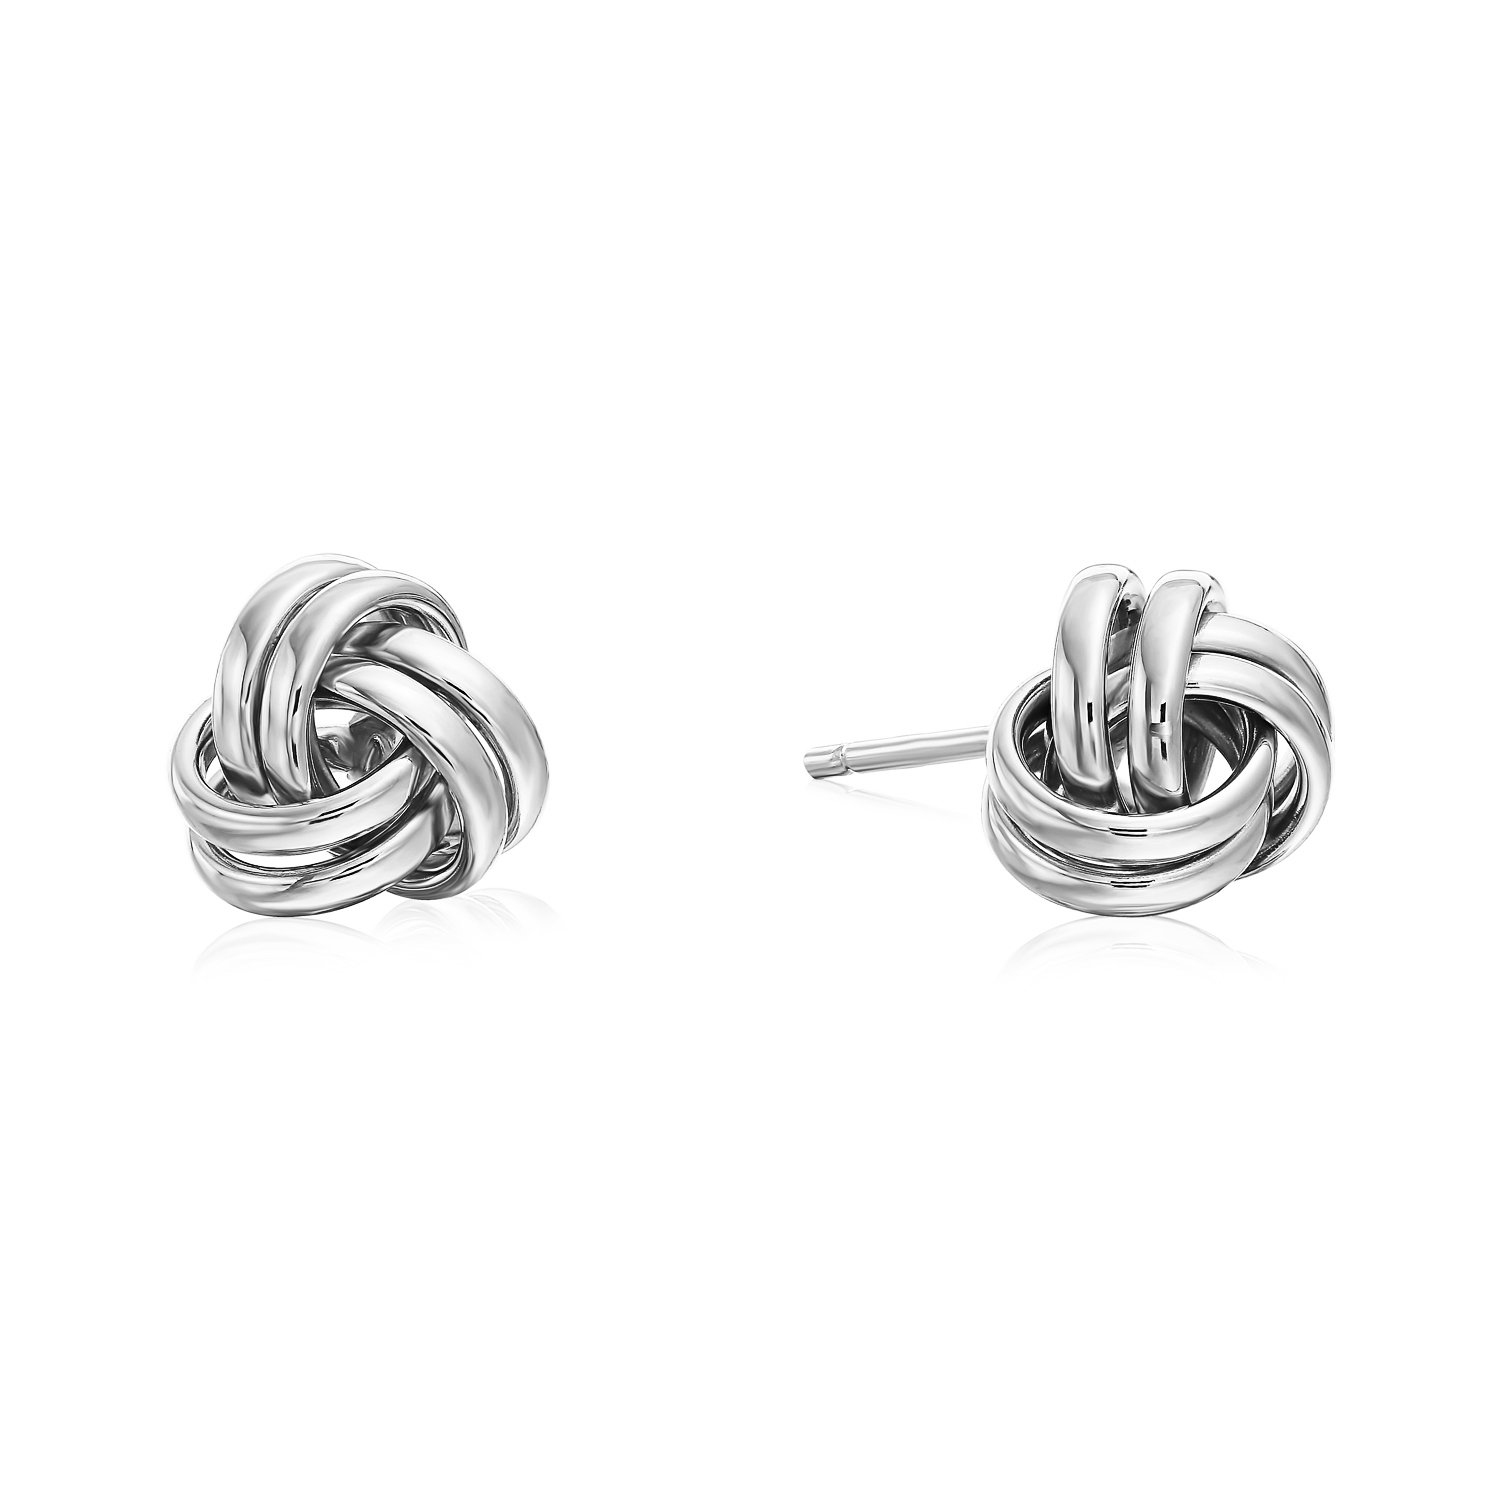 14k White Gold Polished Love Knot Stud Earrings - 7mm